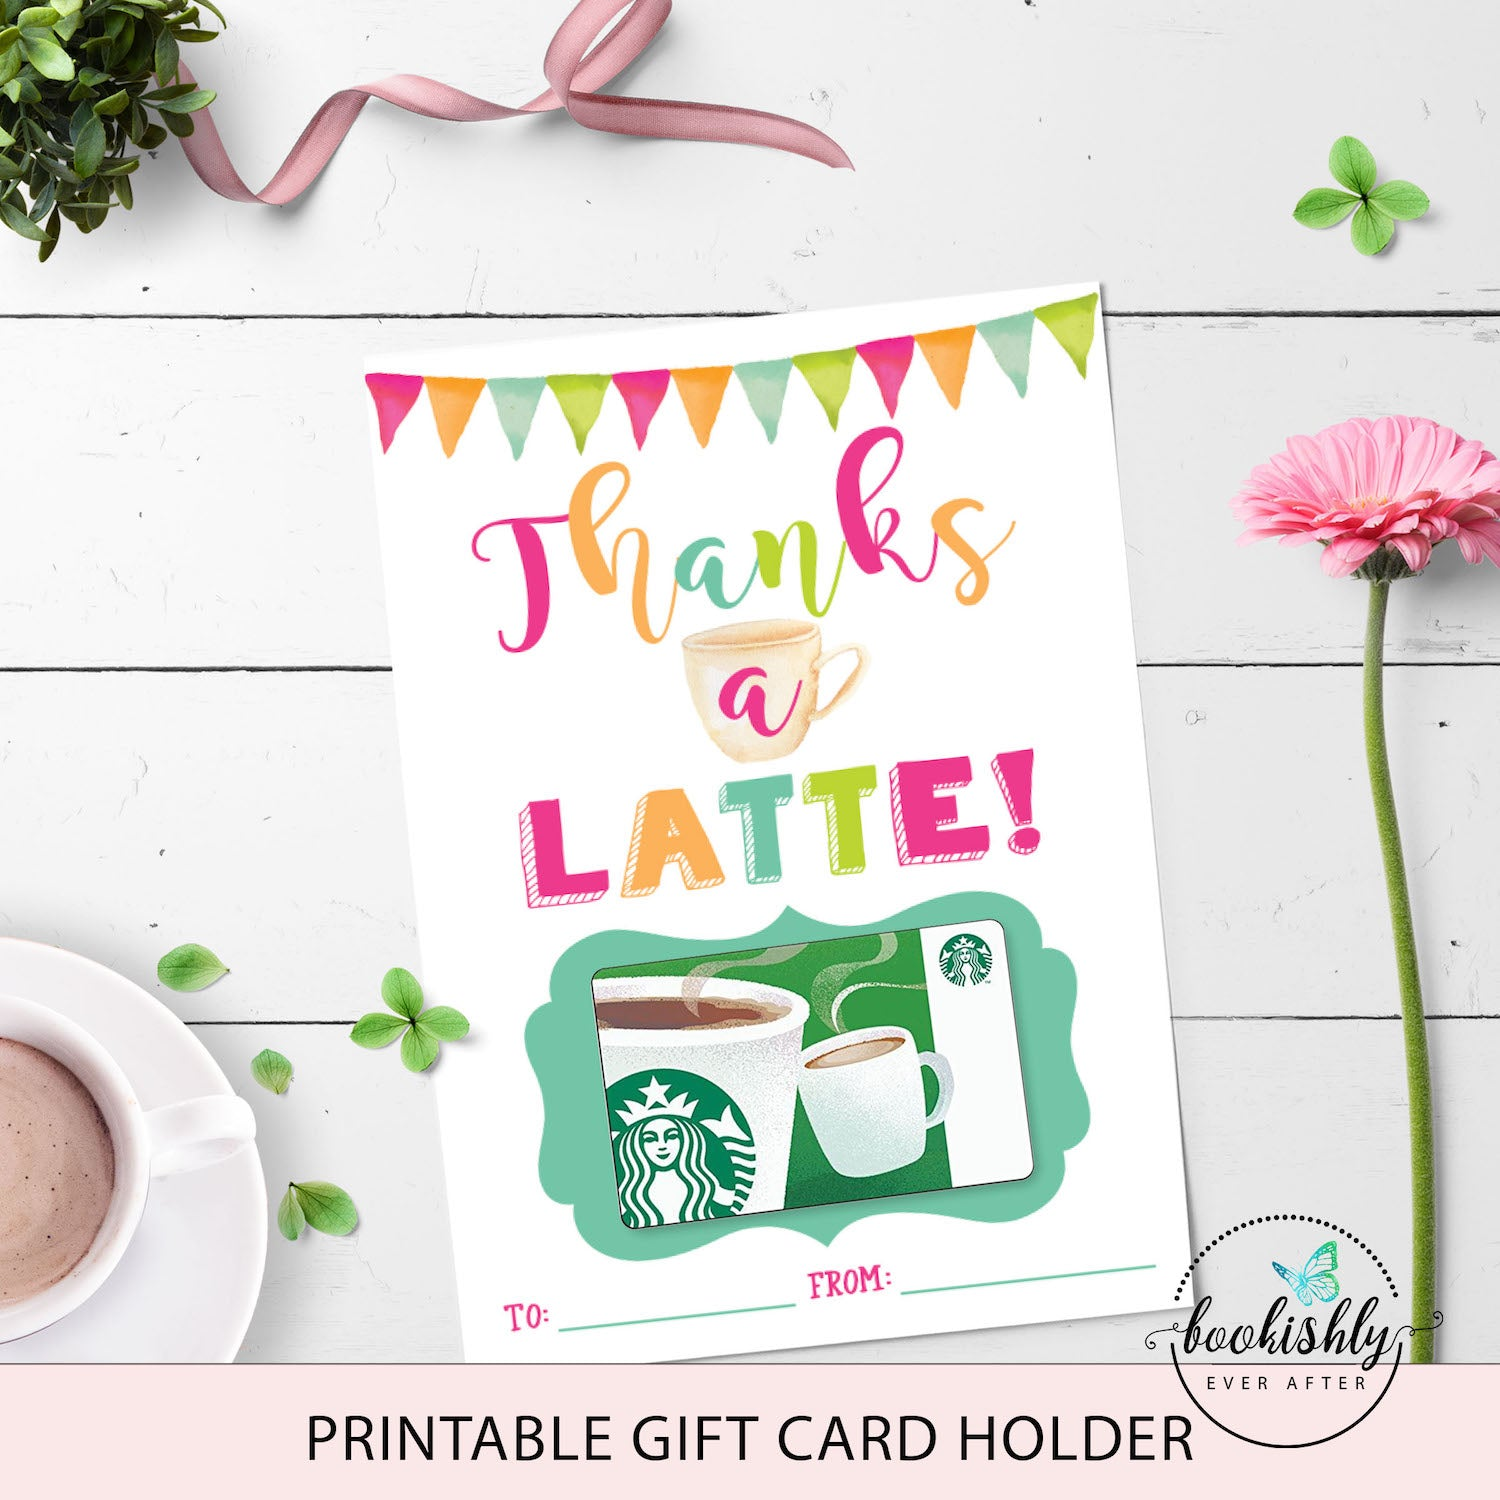 graphic about Thanks a Latte Printable identified as Instructor Present Card Holder Printable, Due a Latte Starbucks